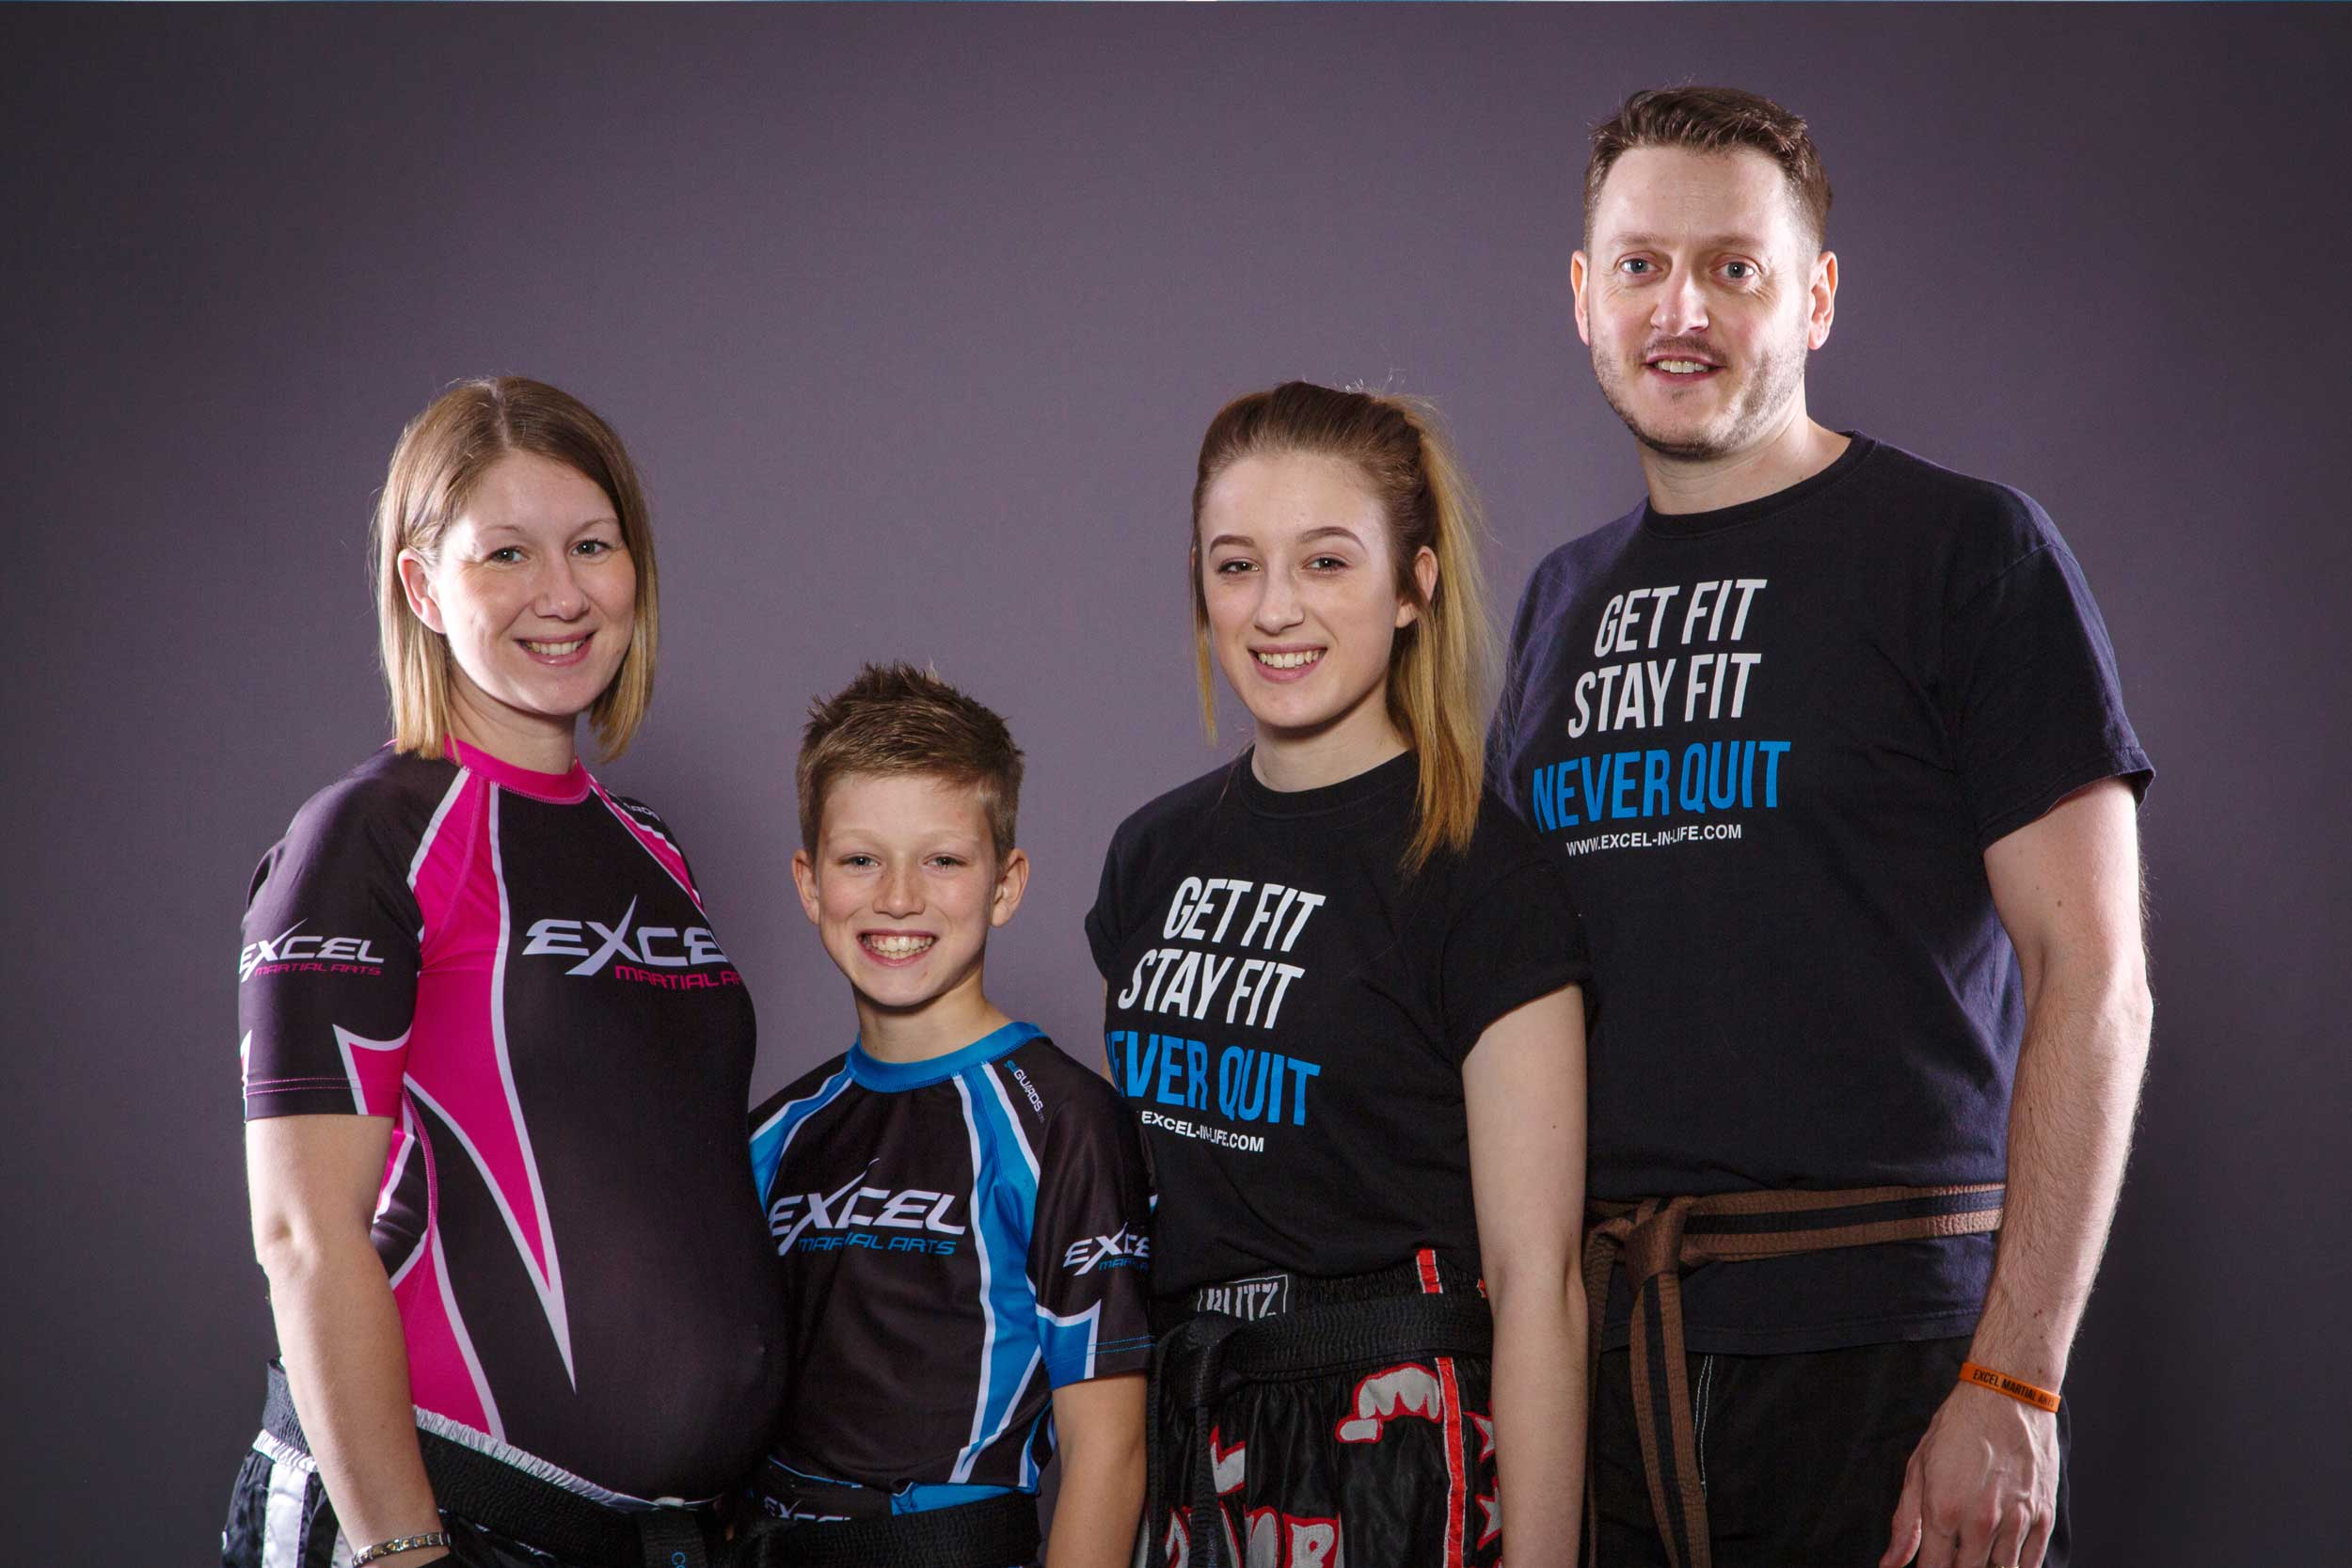 family karate and kickboxing